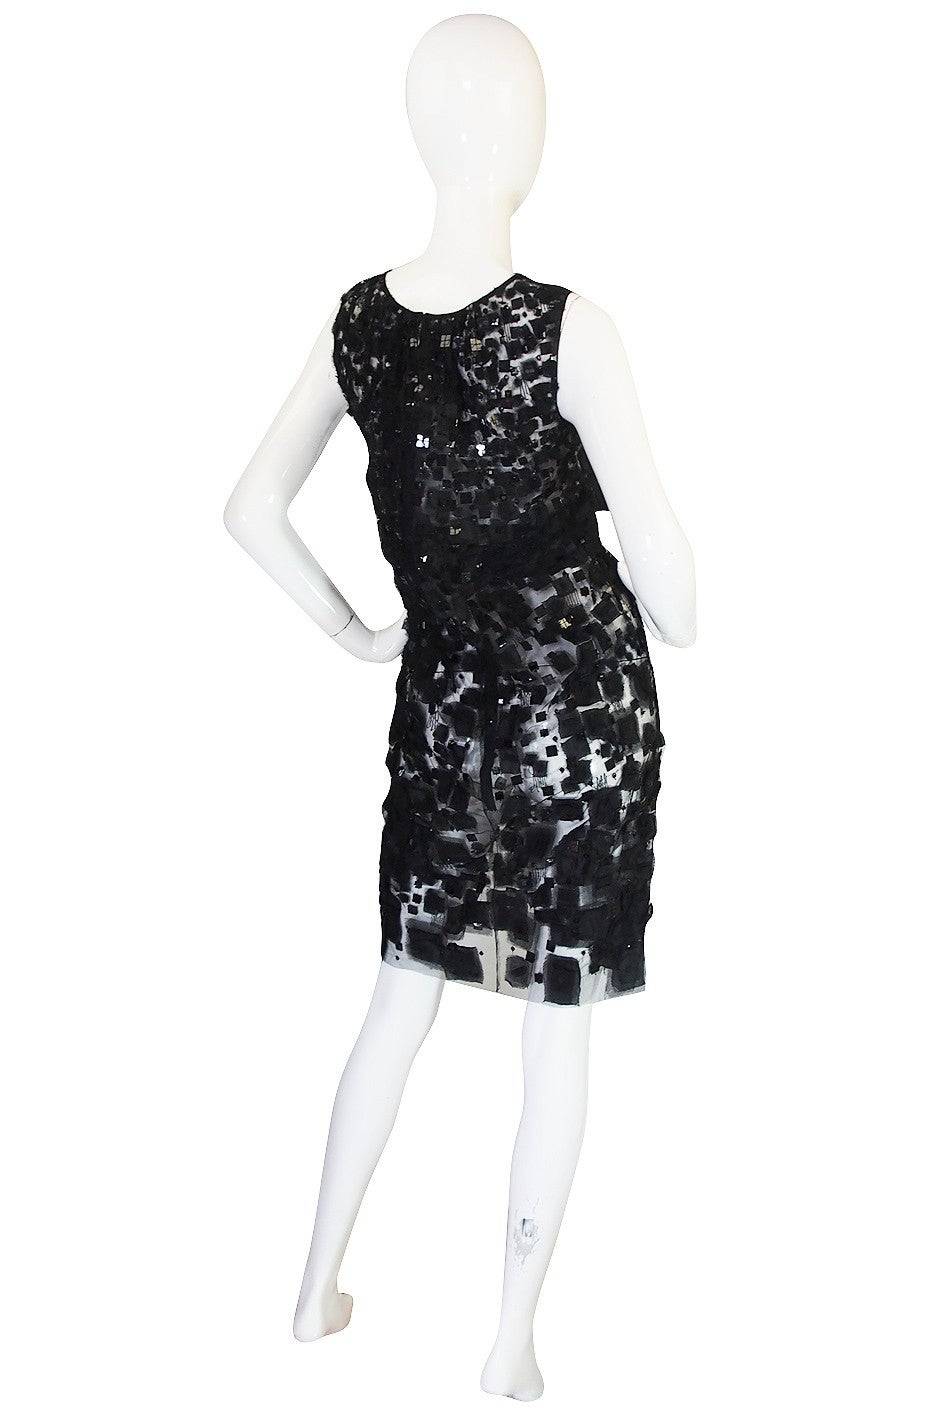 This dress was Look 44 on the 2009 Resort Runway Collection. At the time, Oscar quoted to Style dot com